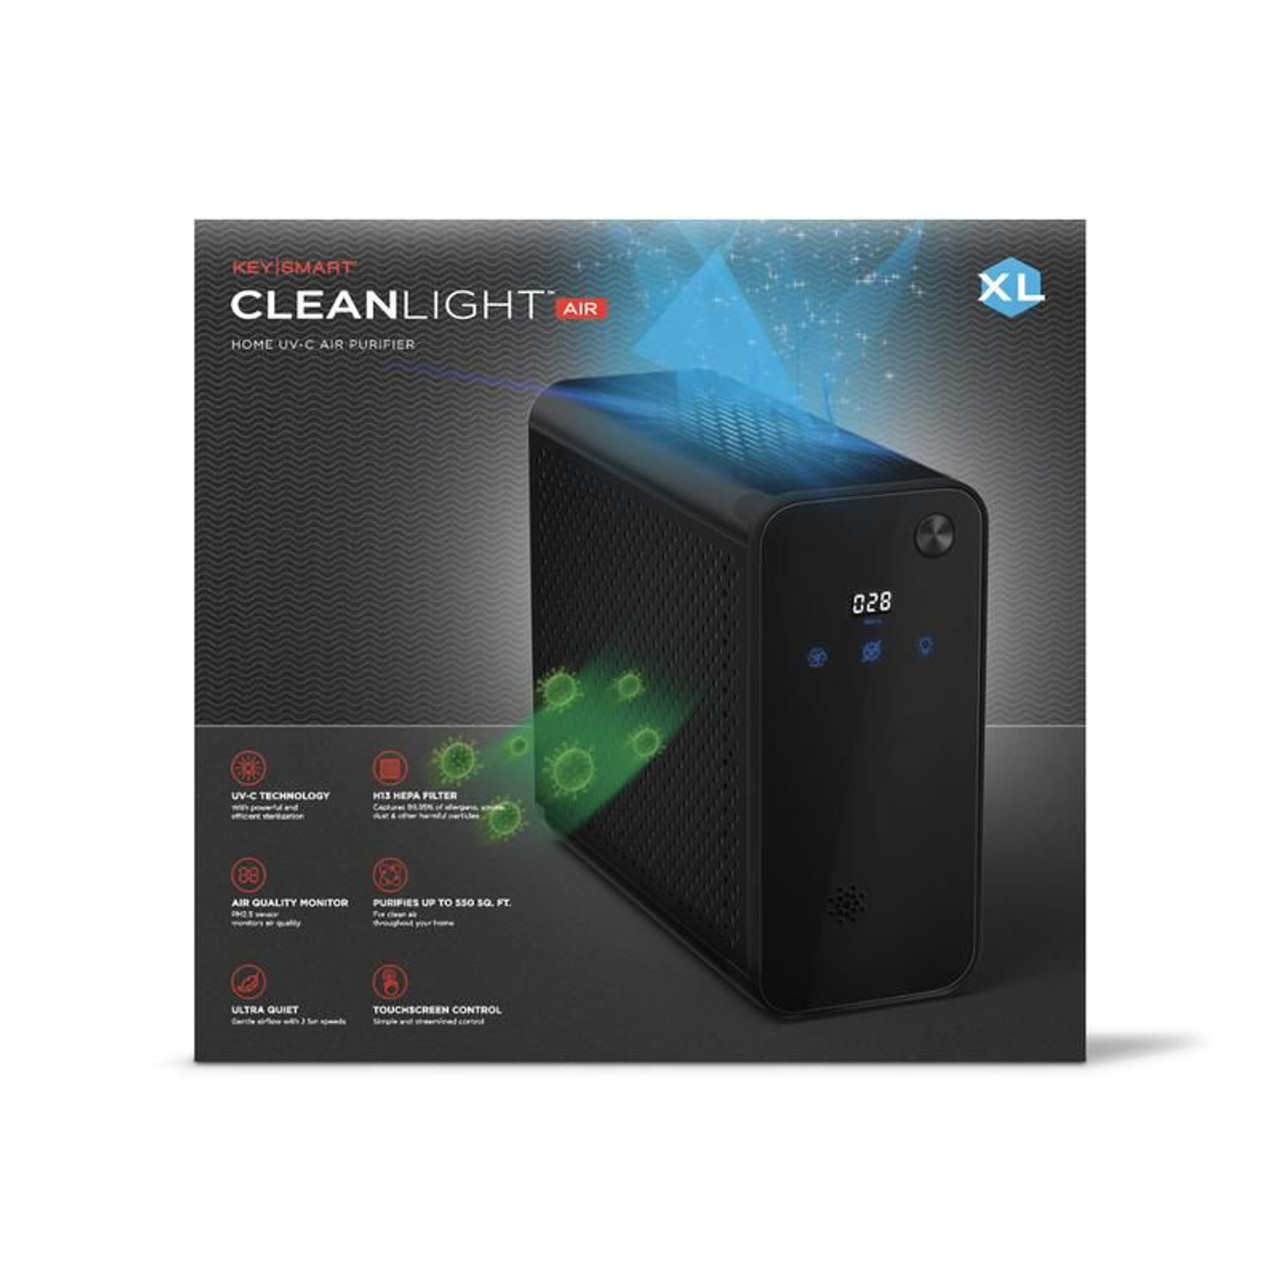 CleanLight Air XL Large Room UV Air Purifier with Air Quality Monitoring